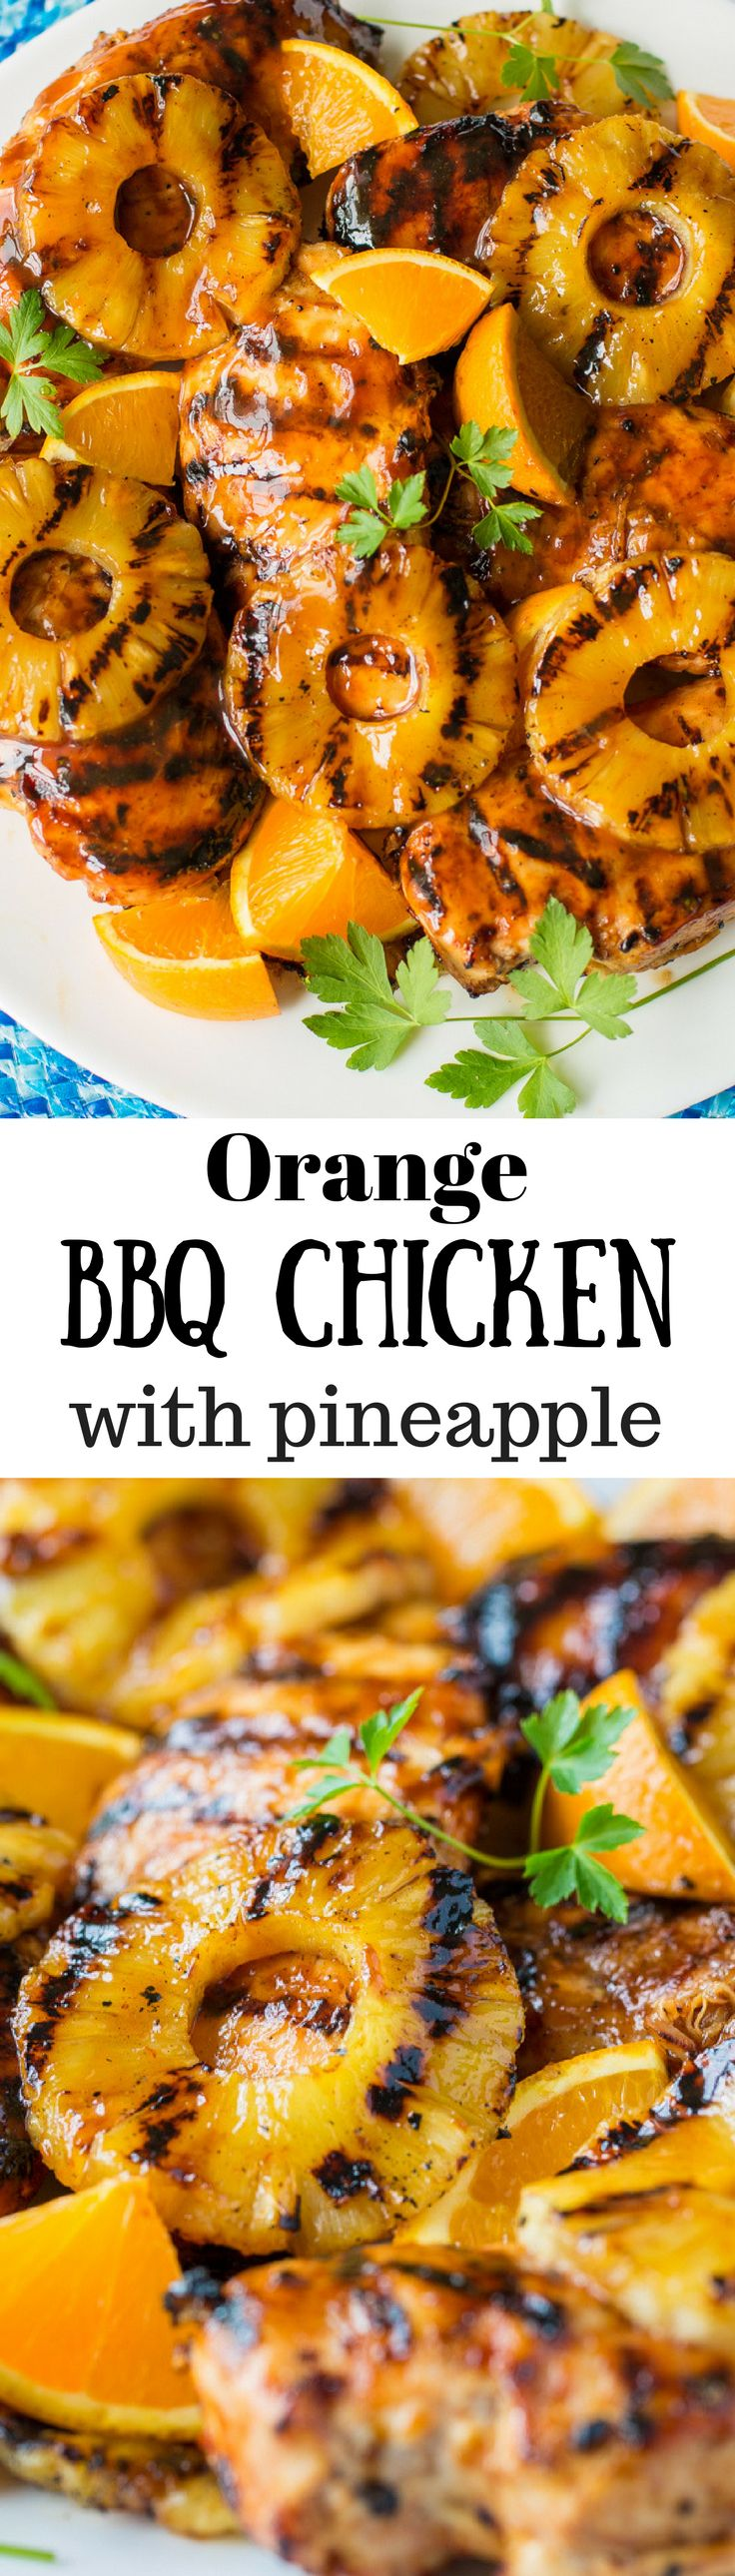 Fresh off the grill!    This Orange Barbecue Grilled Chicken Recipe is deliciously different and a breeze to throw together in a flash.  We love the bright orange flavor and the hint of ginger and pineapple juice in the sauce.  It's lip smacking good!